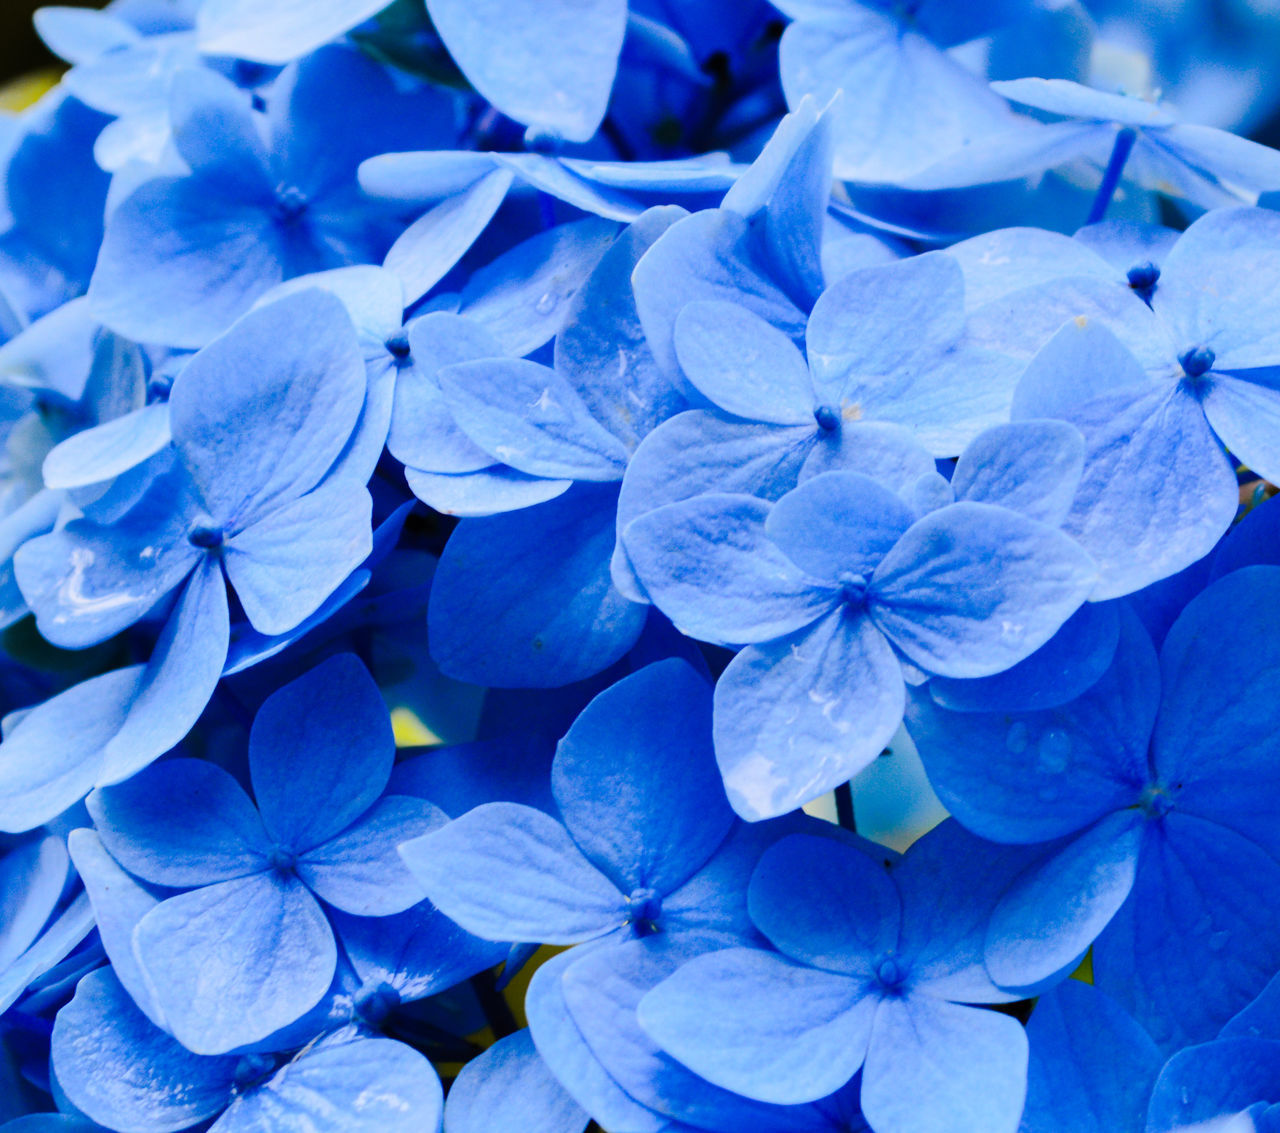 Beauty In Nature Blue Blue Flowers Blue Petals Close-up Day Flower Flower Head Fragility Freshness Hydrangea Nature No People Outdoors Petal